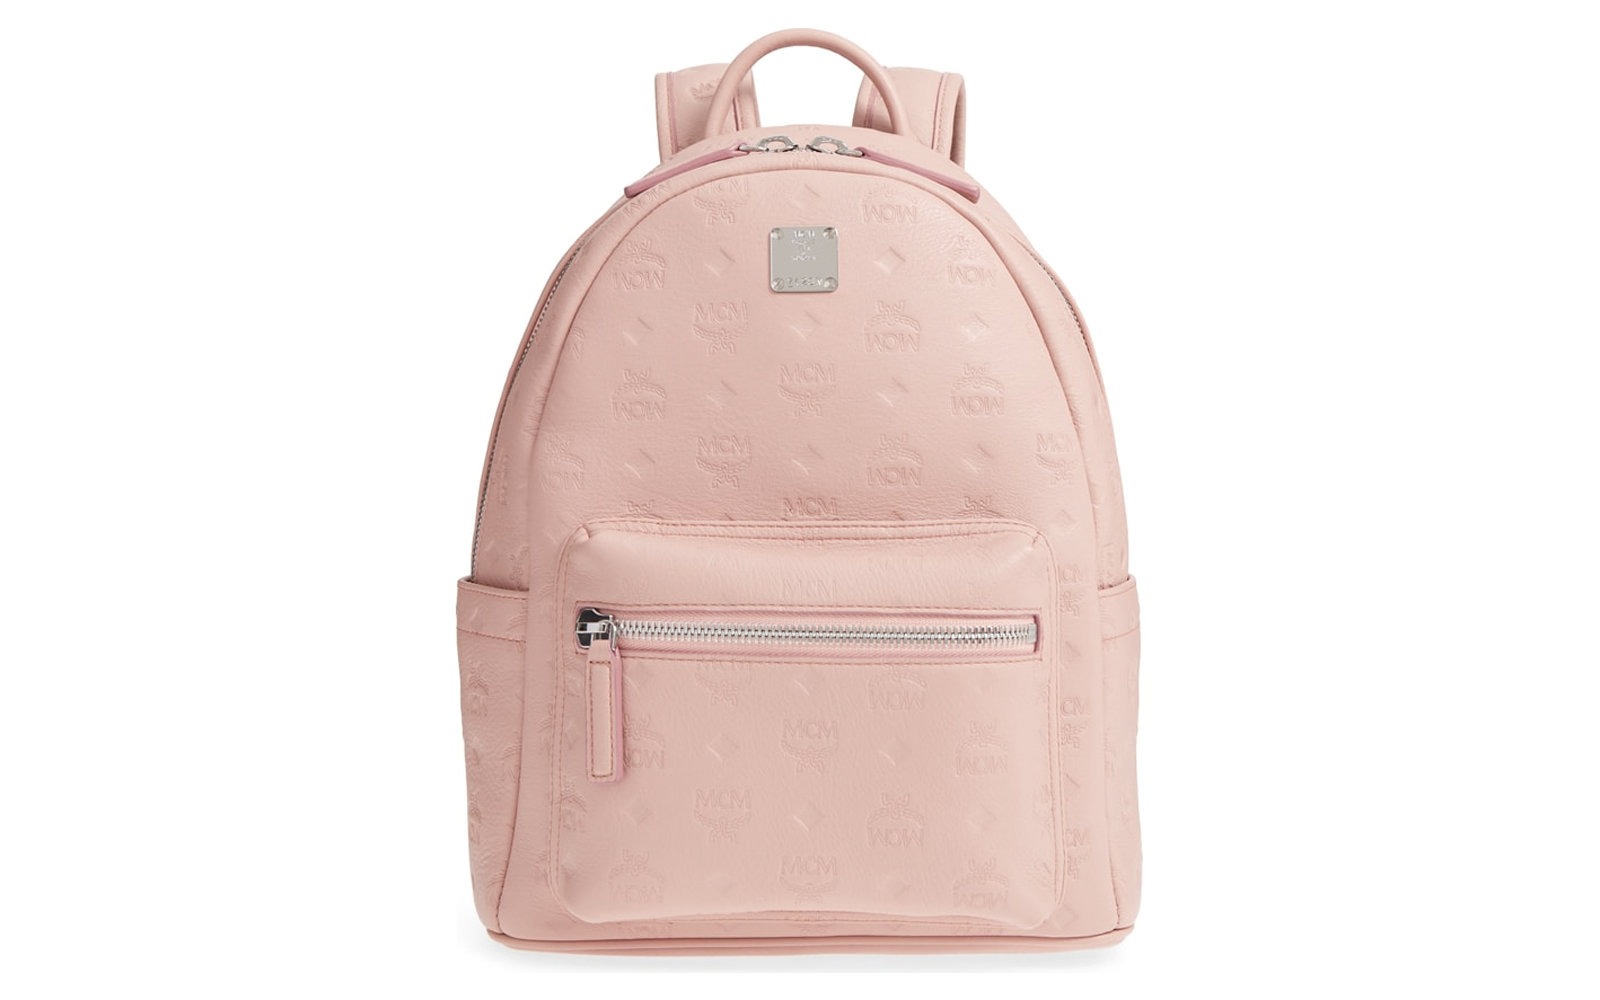 dbee356264 Stylish Backpacks From Nordstrom s Anniversary Sale